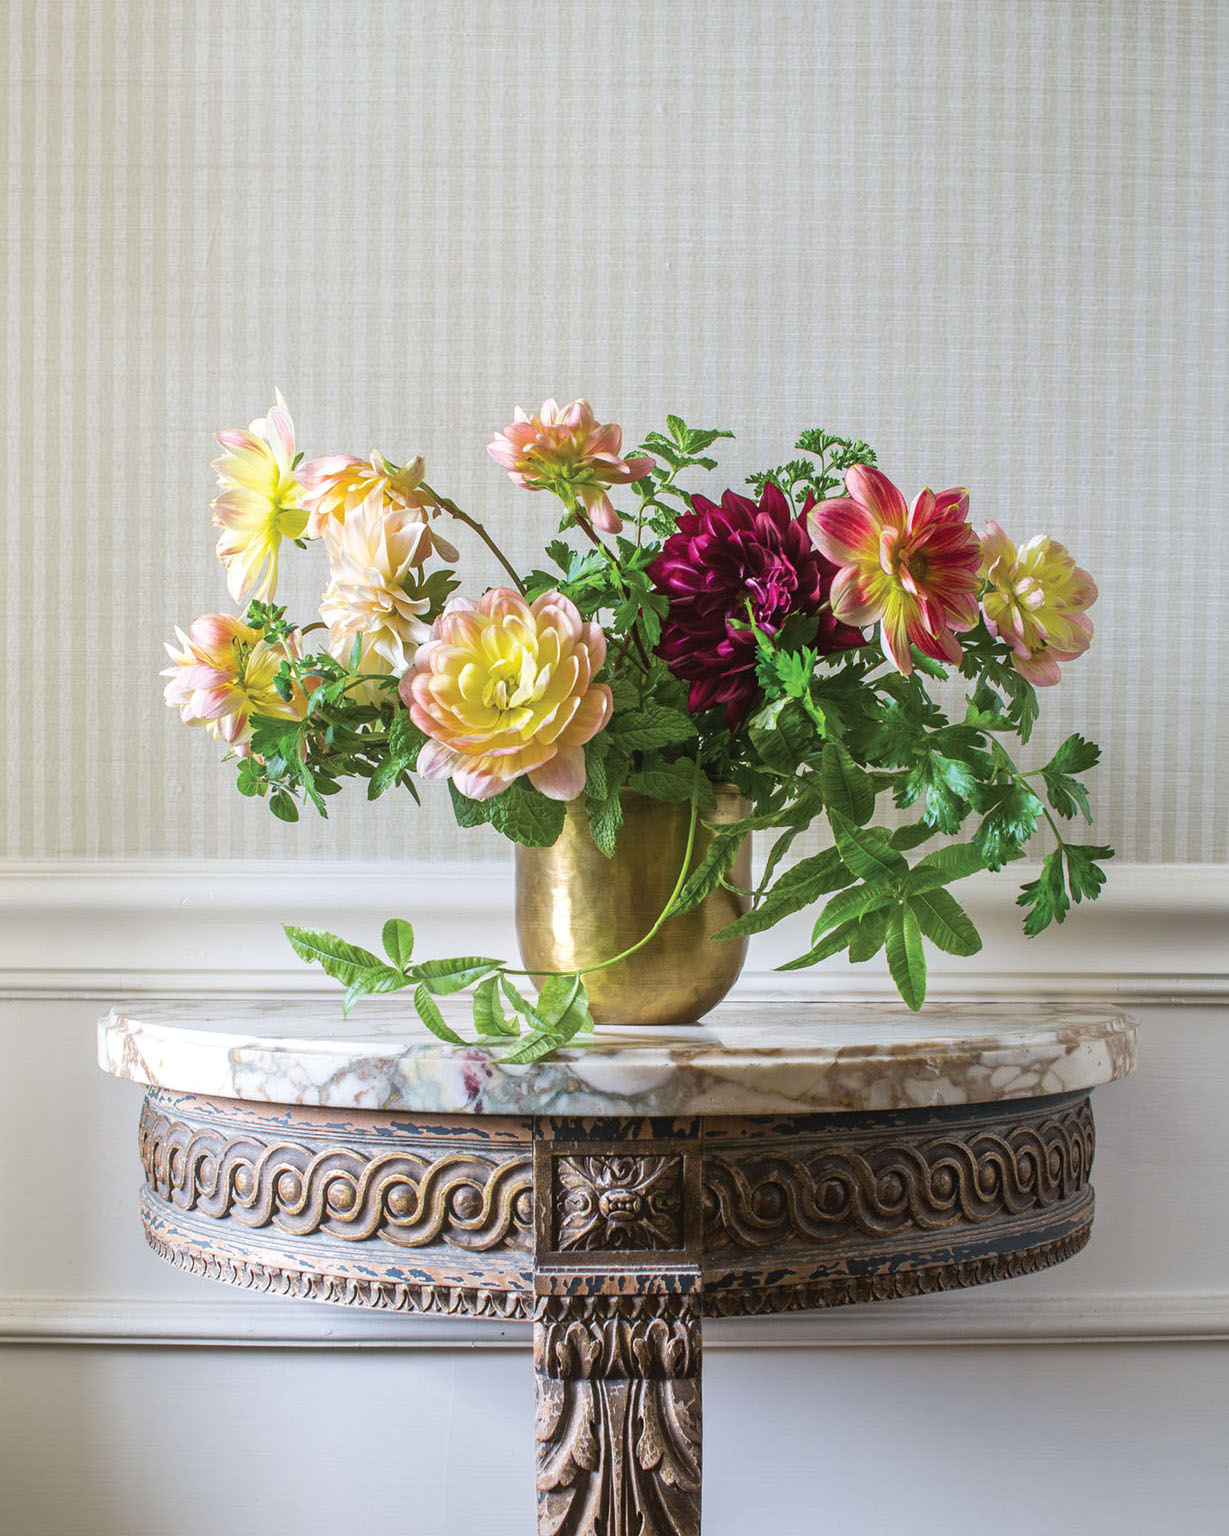 Sidra Forman's arrangement of autumn-hued dahlias with trailing herbs in a brass vessel, on a marble top occasional table with carved wood base, against a wallpaper of small taupe and white vertical stripes